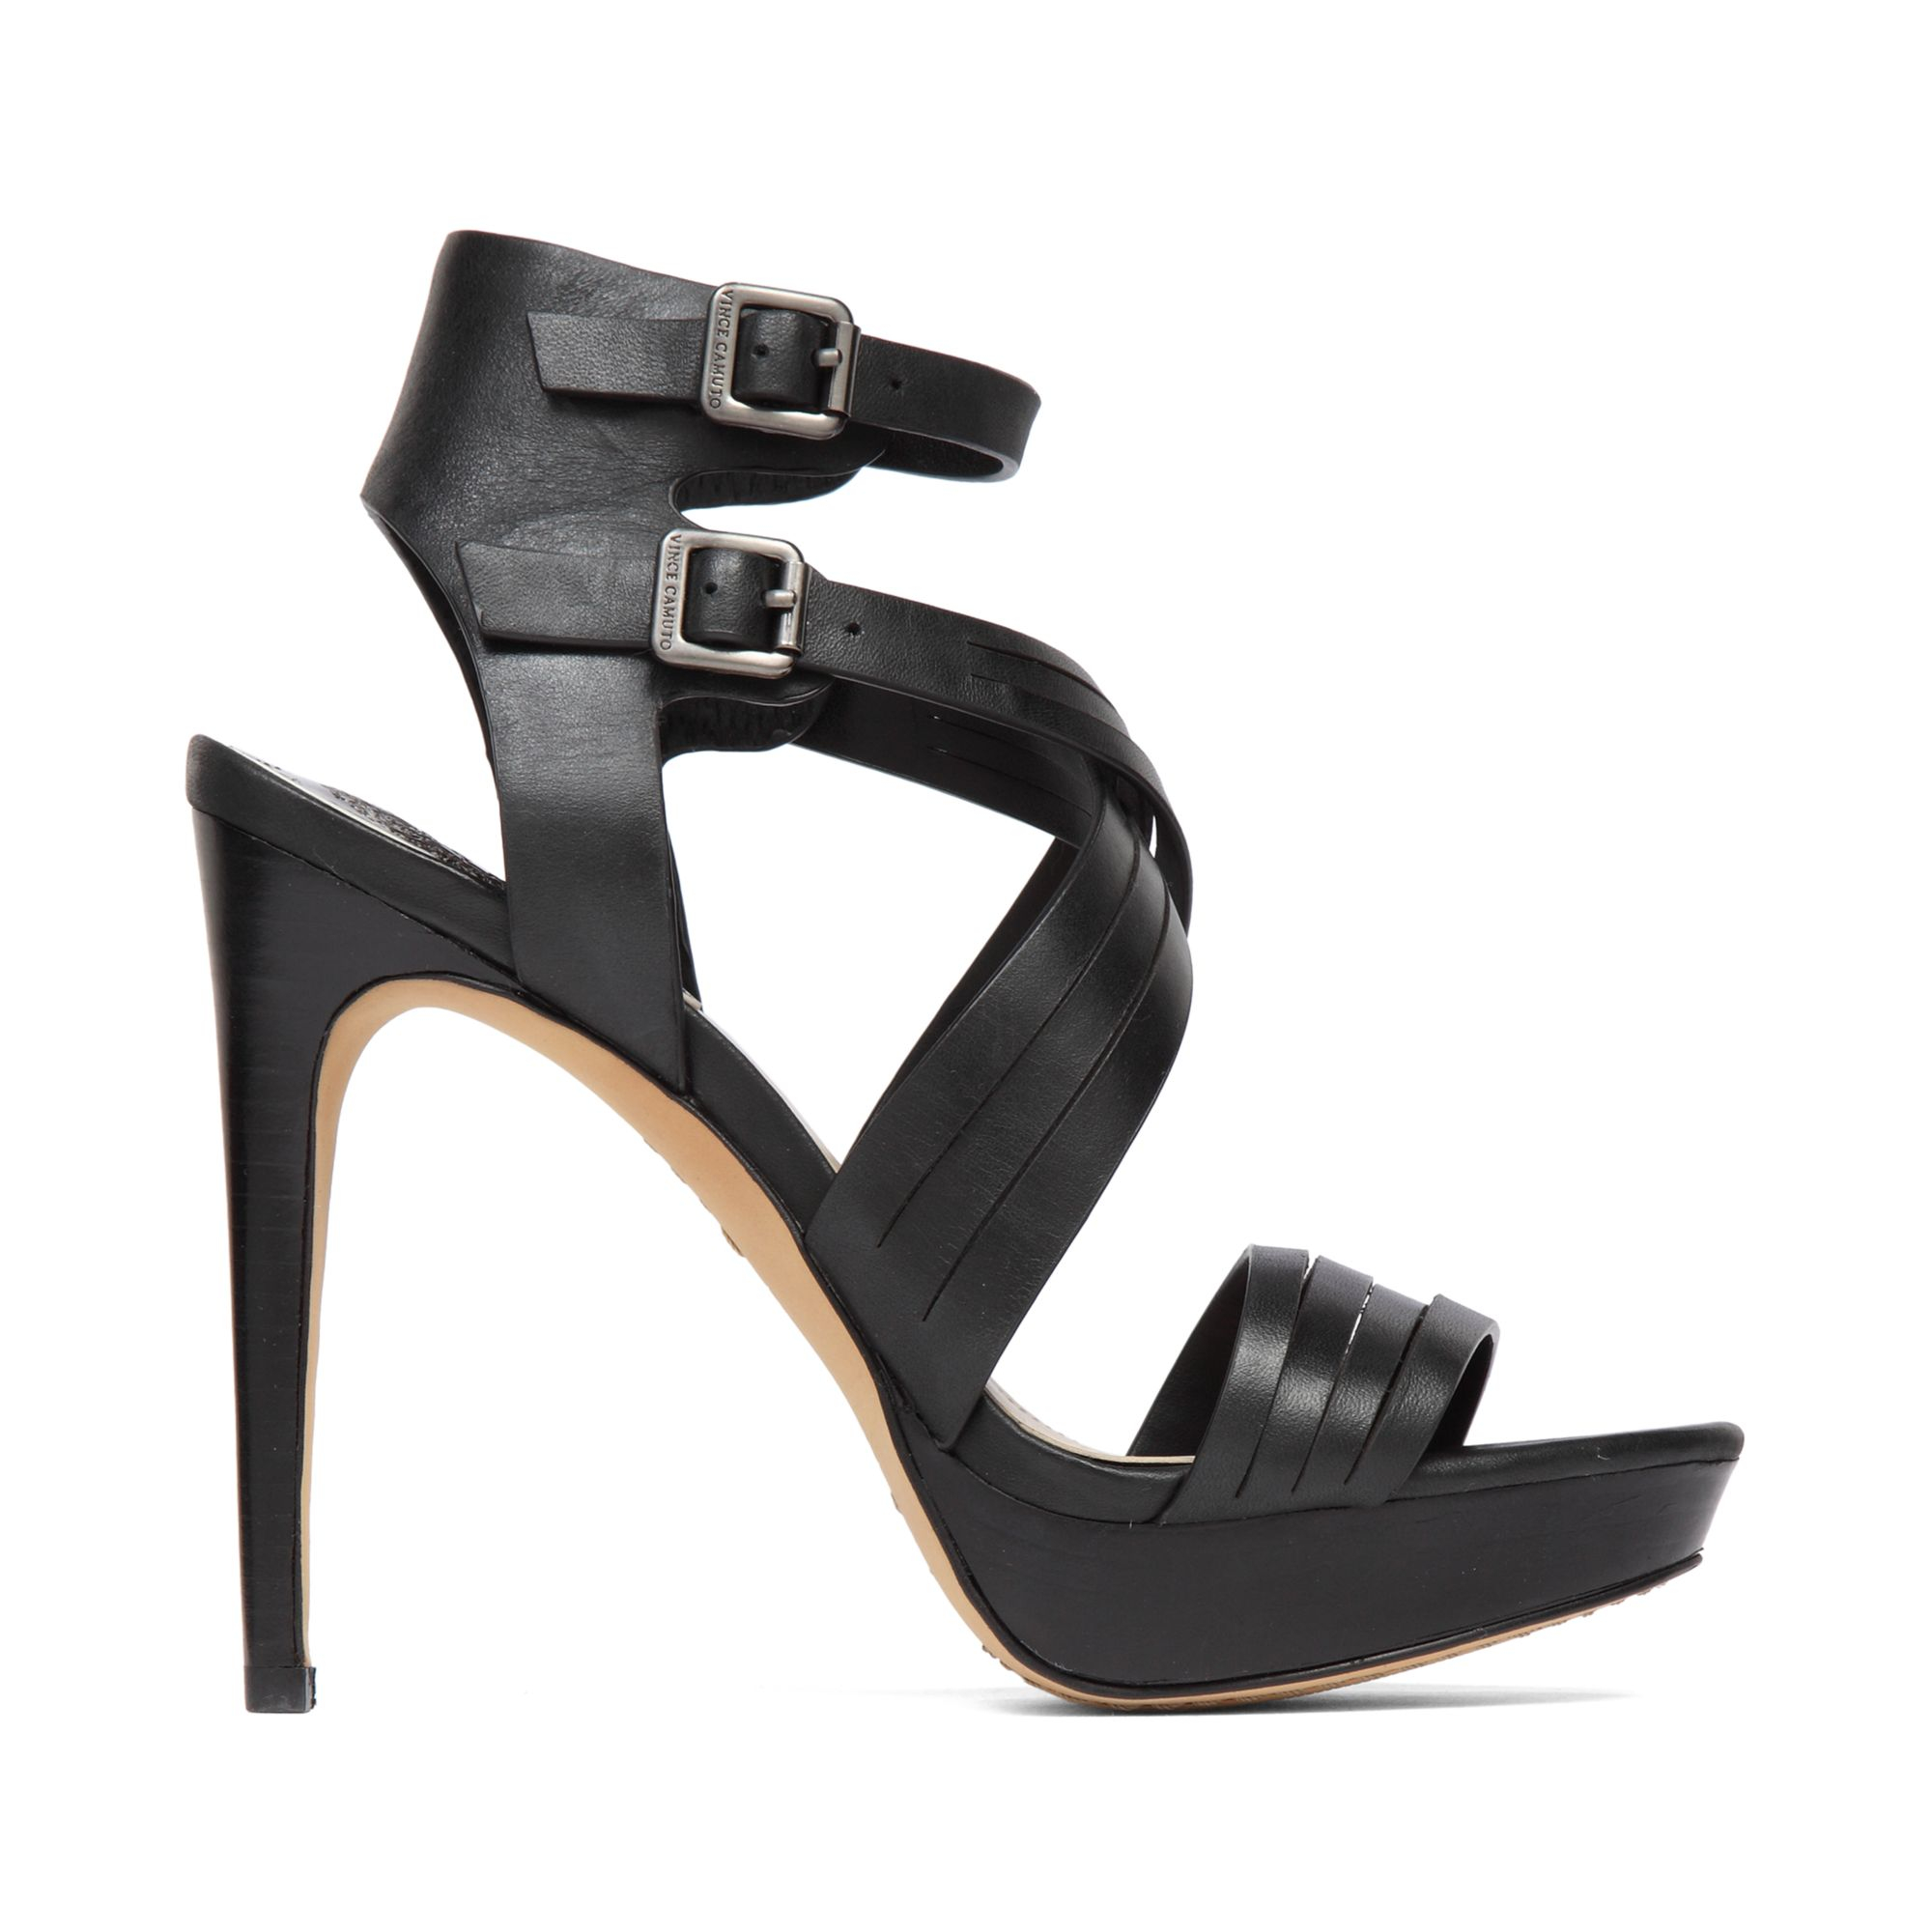 Vince Camuto Jistil High Heel Platform Sandals In Black Lyst